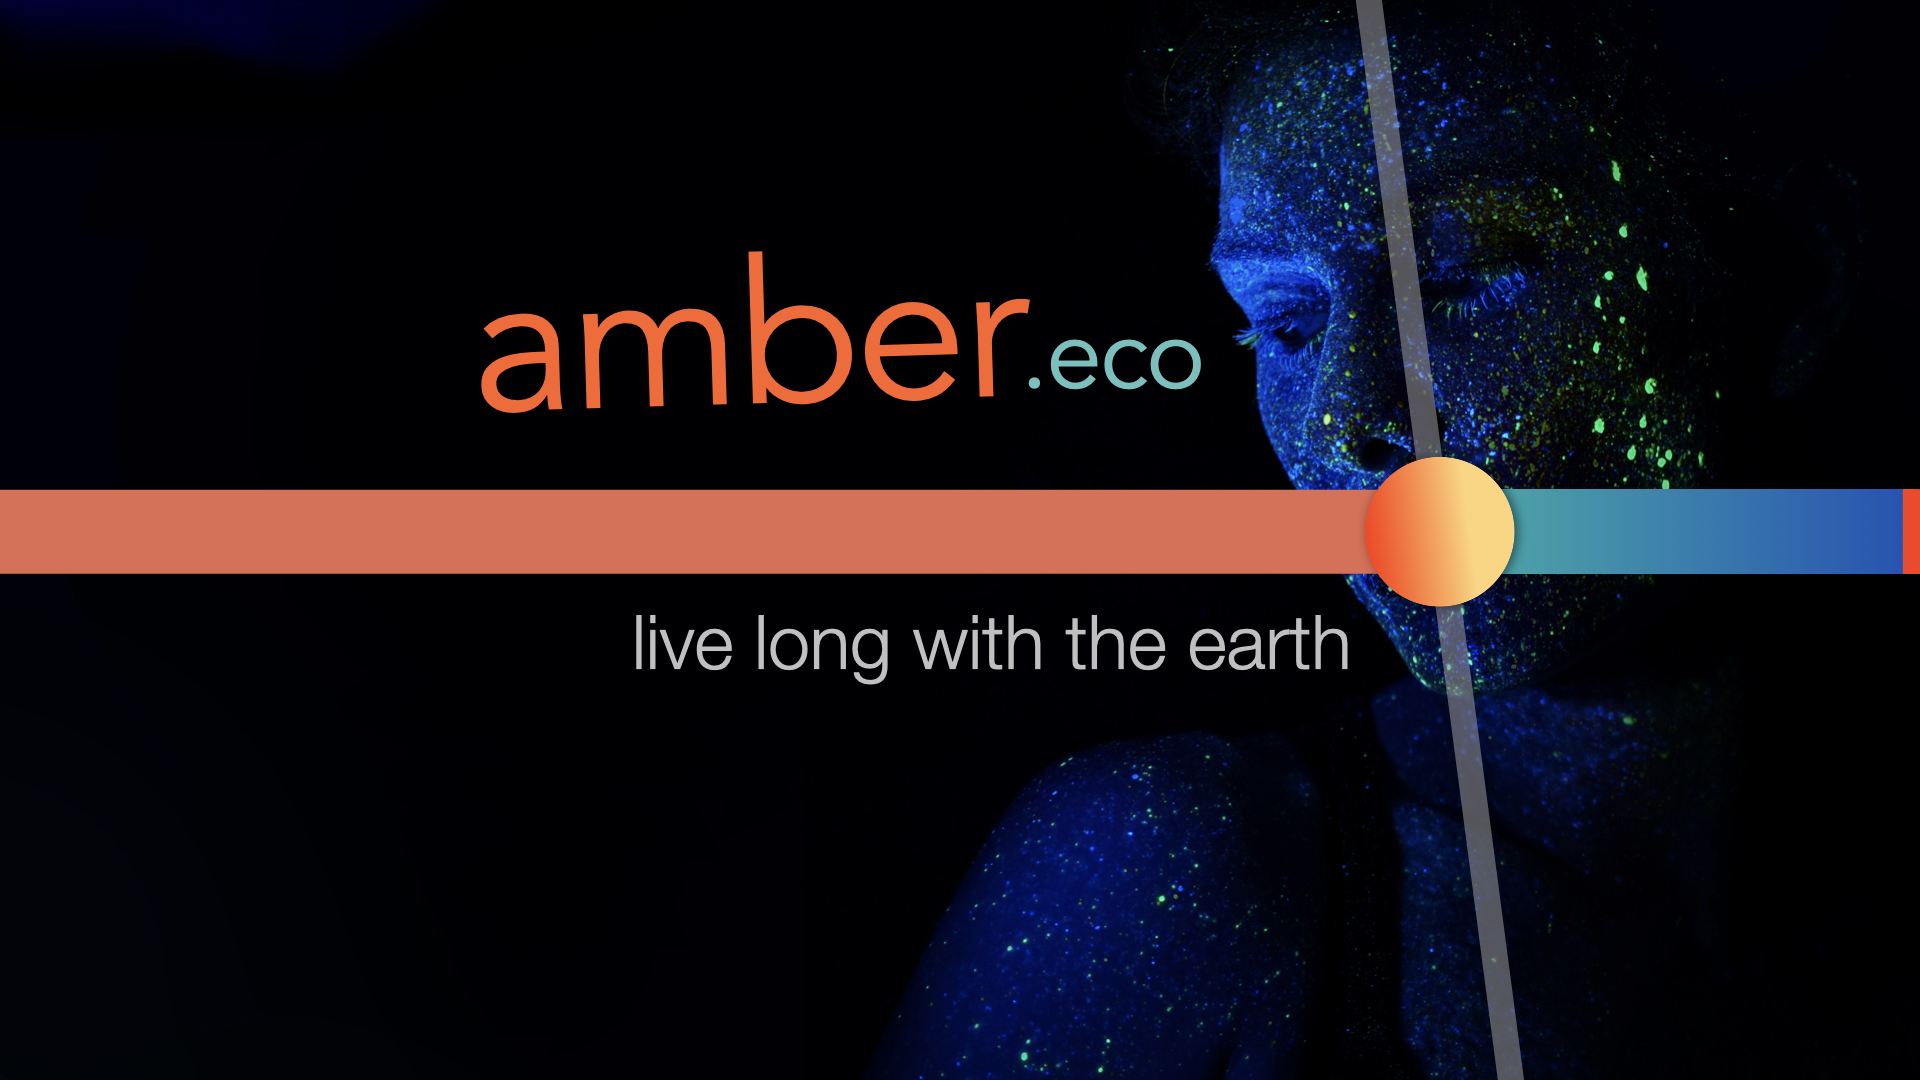 amber.eco - live long with the earth